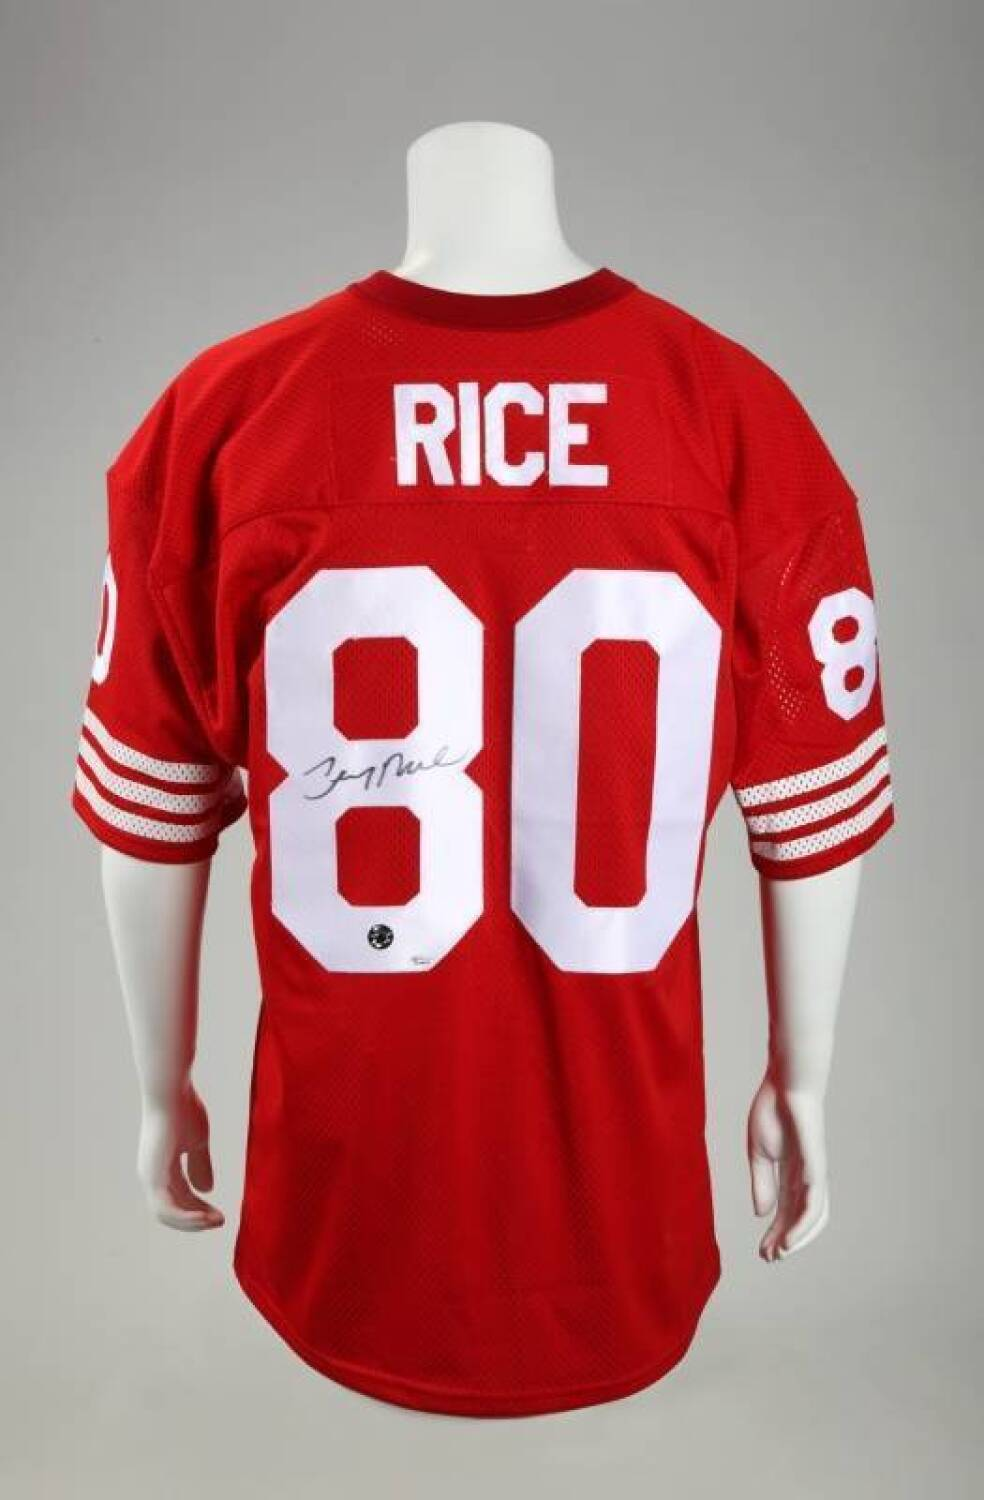 reputable site 1d13c 98a56 JERRY RICE SIGNED SAN FRANCISCO 49ers JERSEY - Price ...